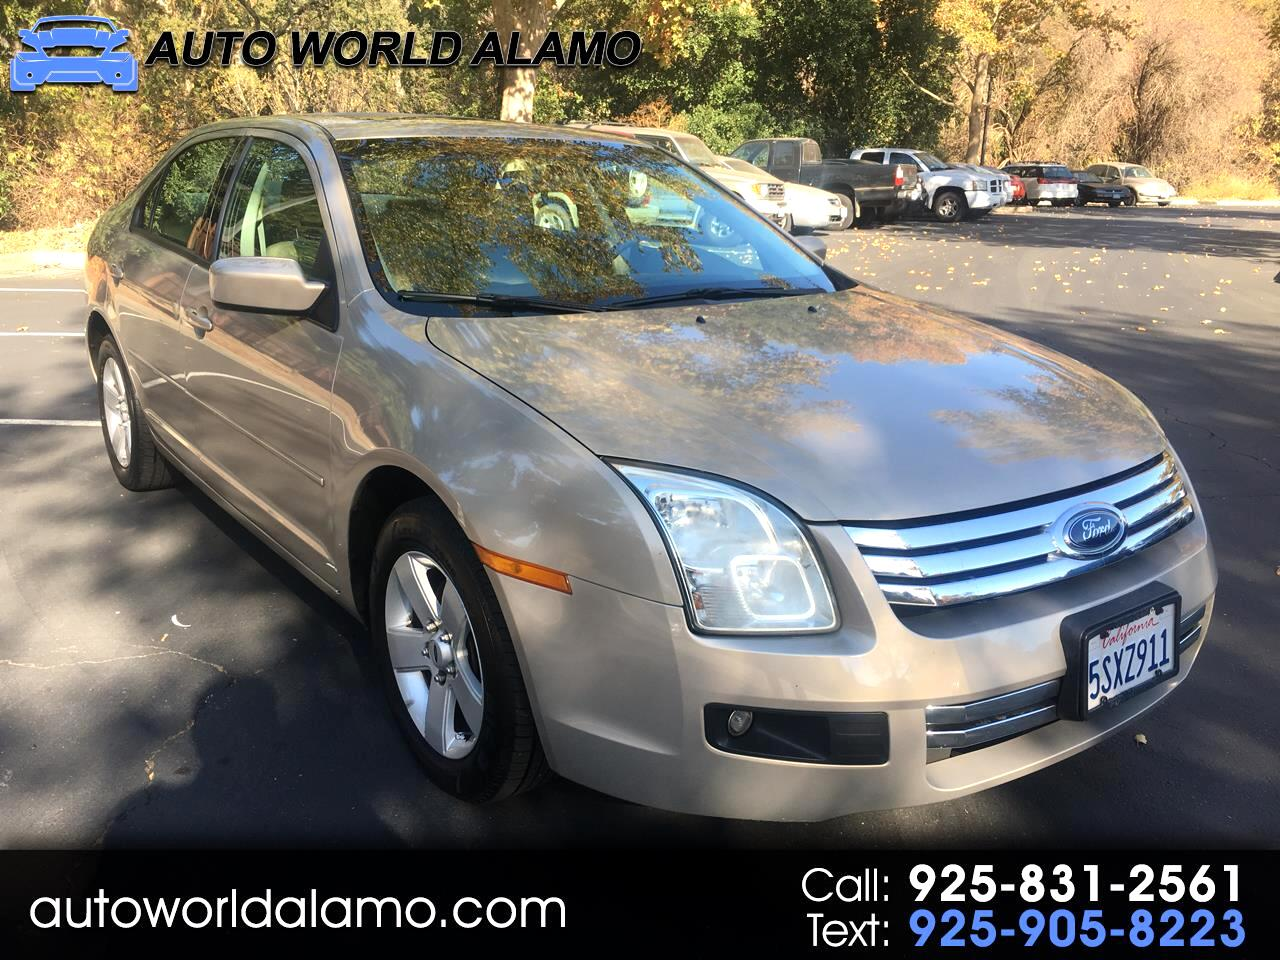 2006 Ford Fusion 4dr Sdn I4 SEL